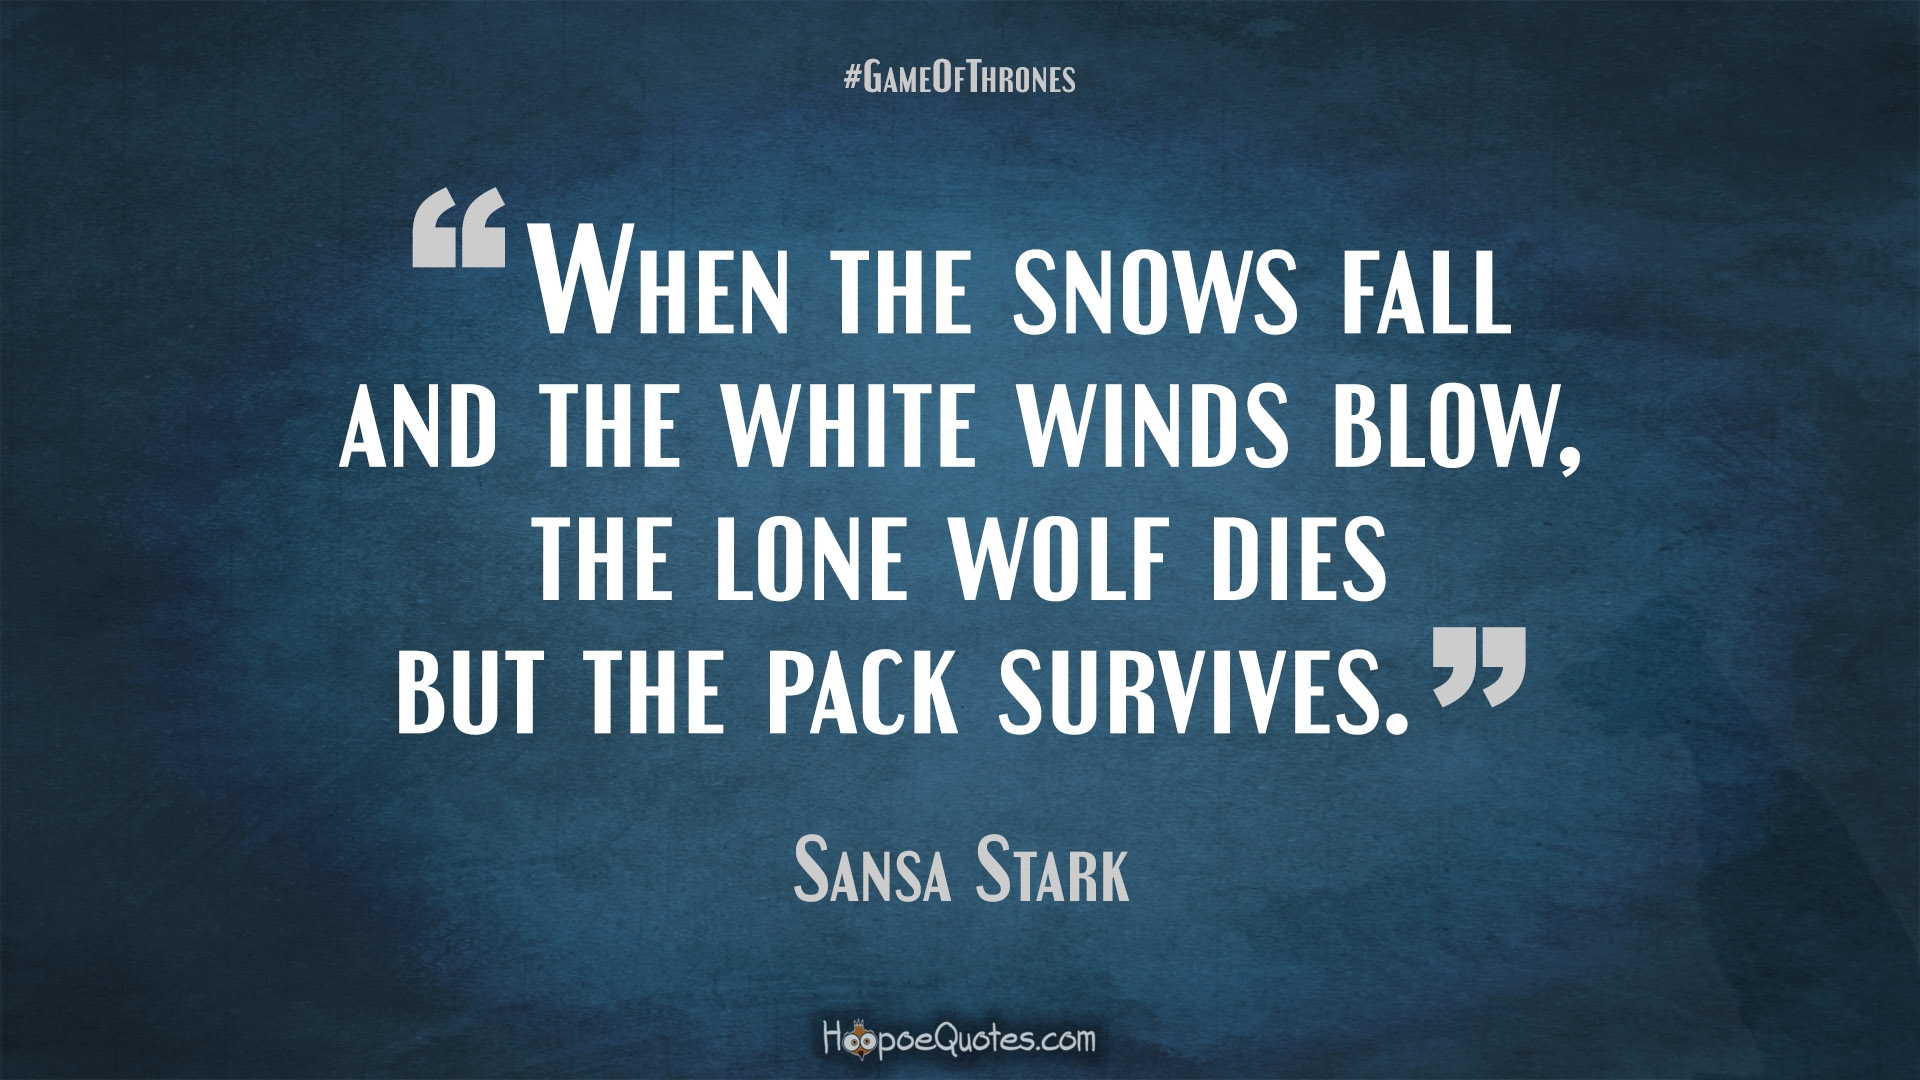 When The Snows Fall And The White Winds Blow The Lone Wolf Dies But